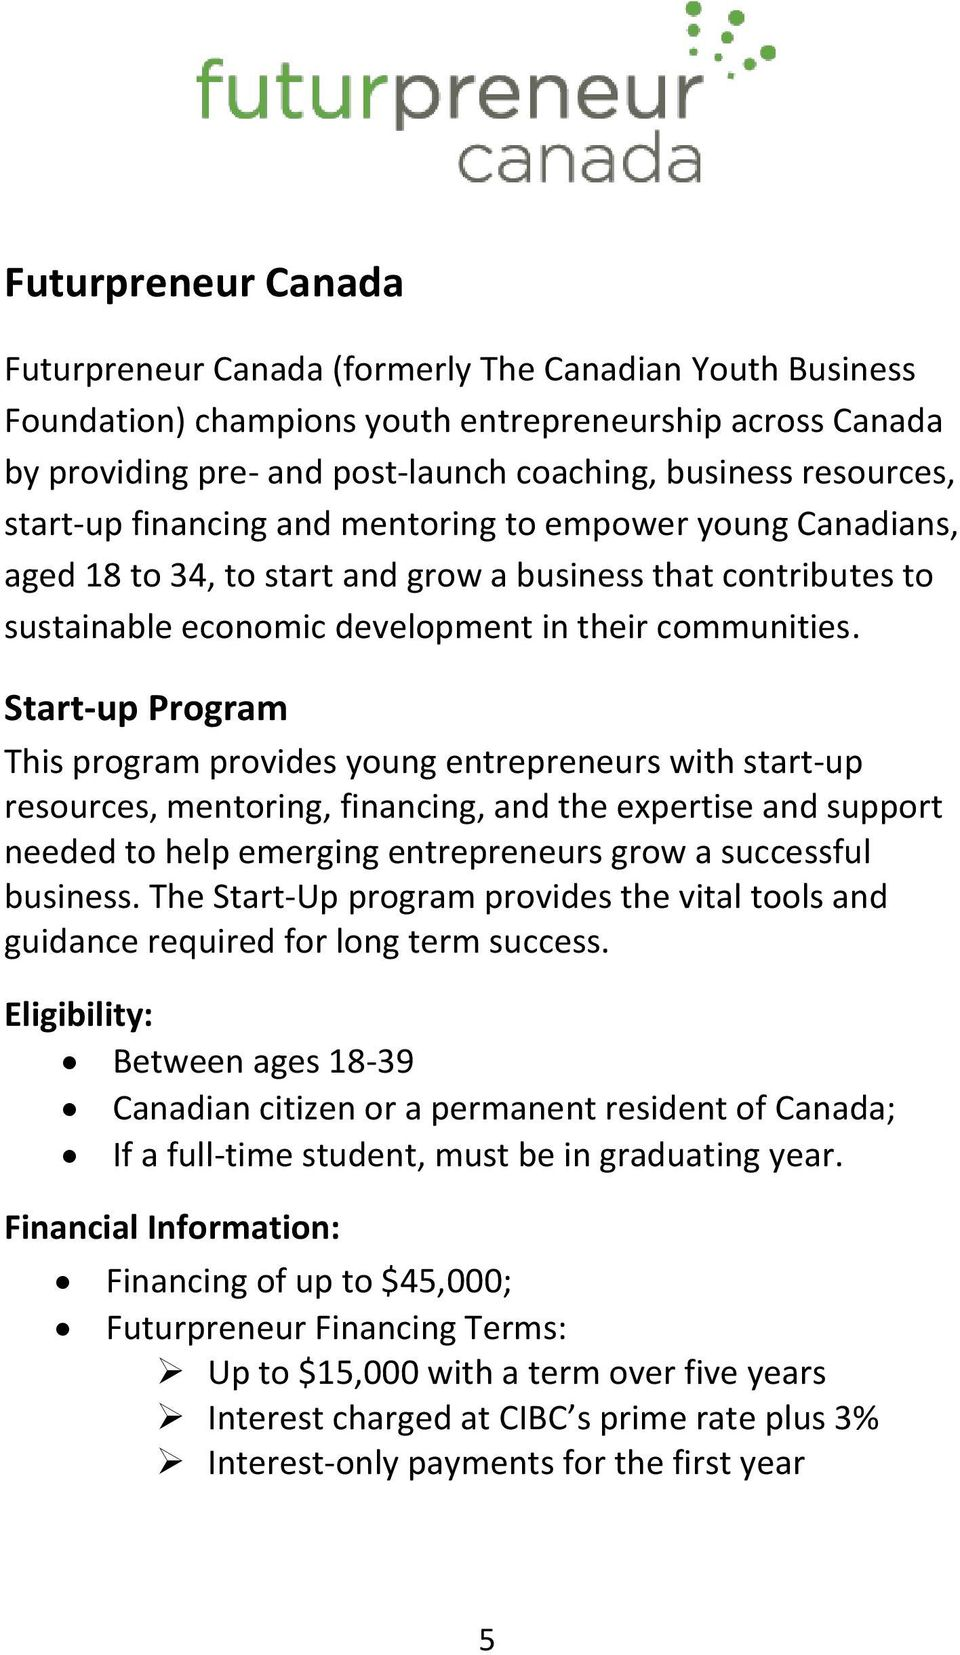 Start-up Program This program provides young entrepreneurs with start-up resources, mentoring, financing, and the expertise and support needed to help emerging entrepreneurs grow a successful